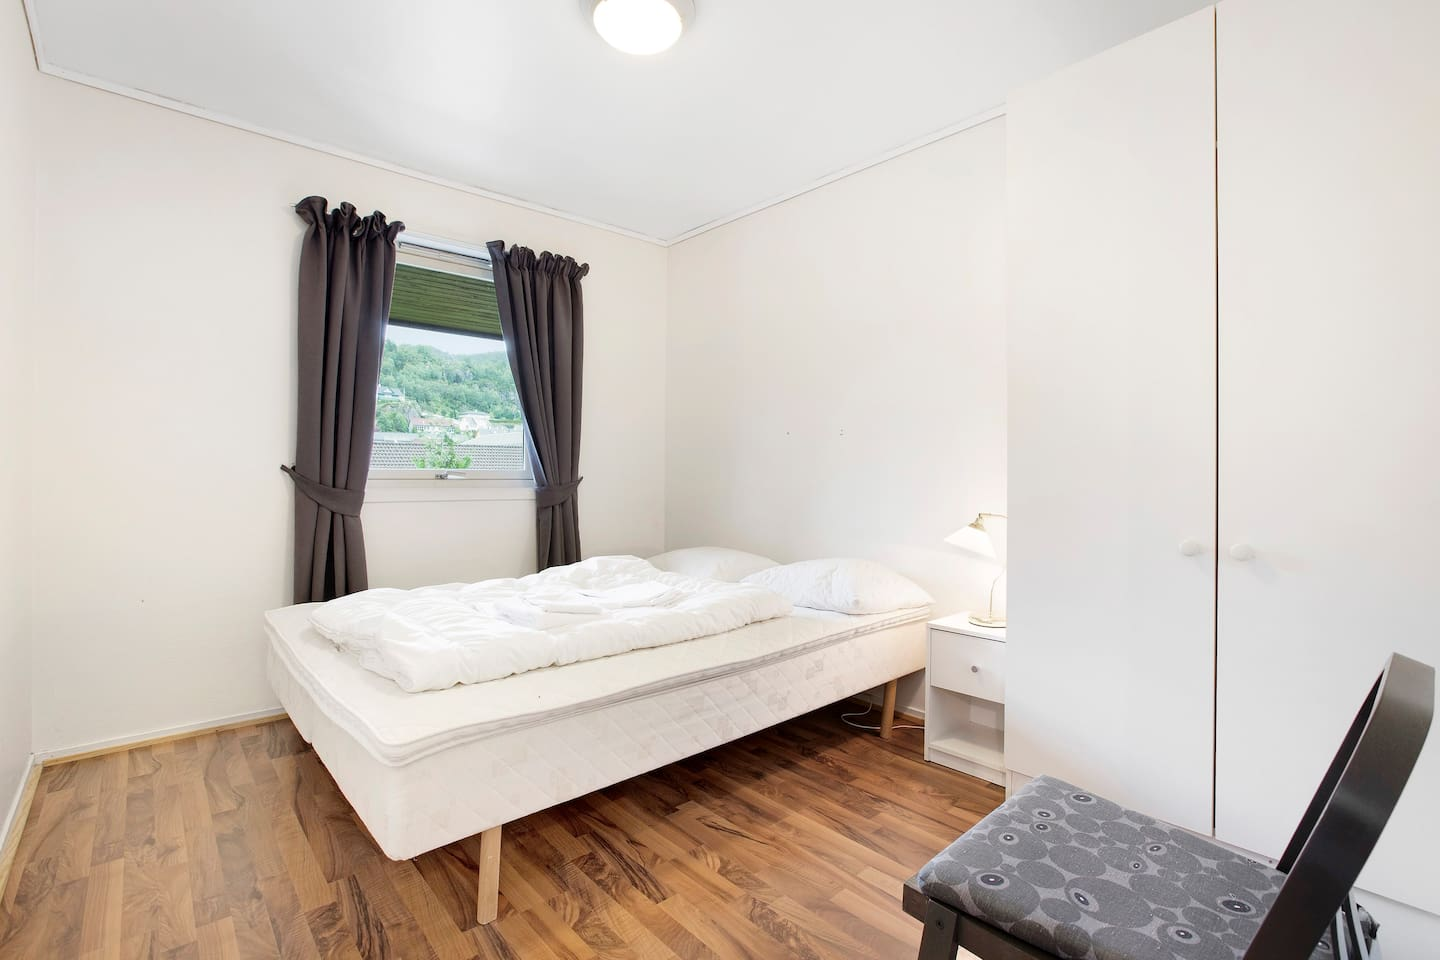 Master Apartment Hotel - 1 Bedroom - Apartments for Rent in Bergen